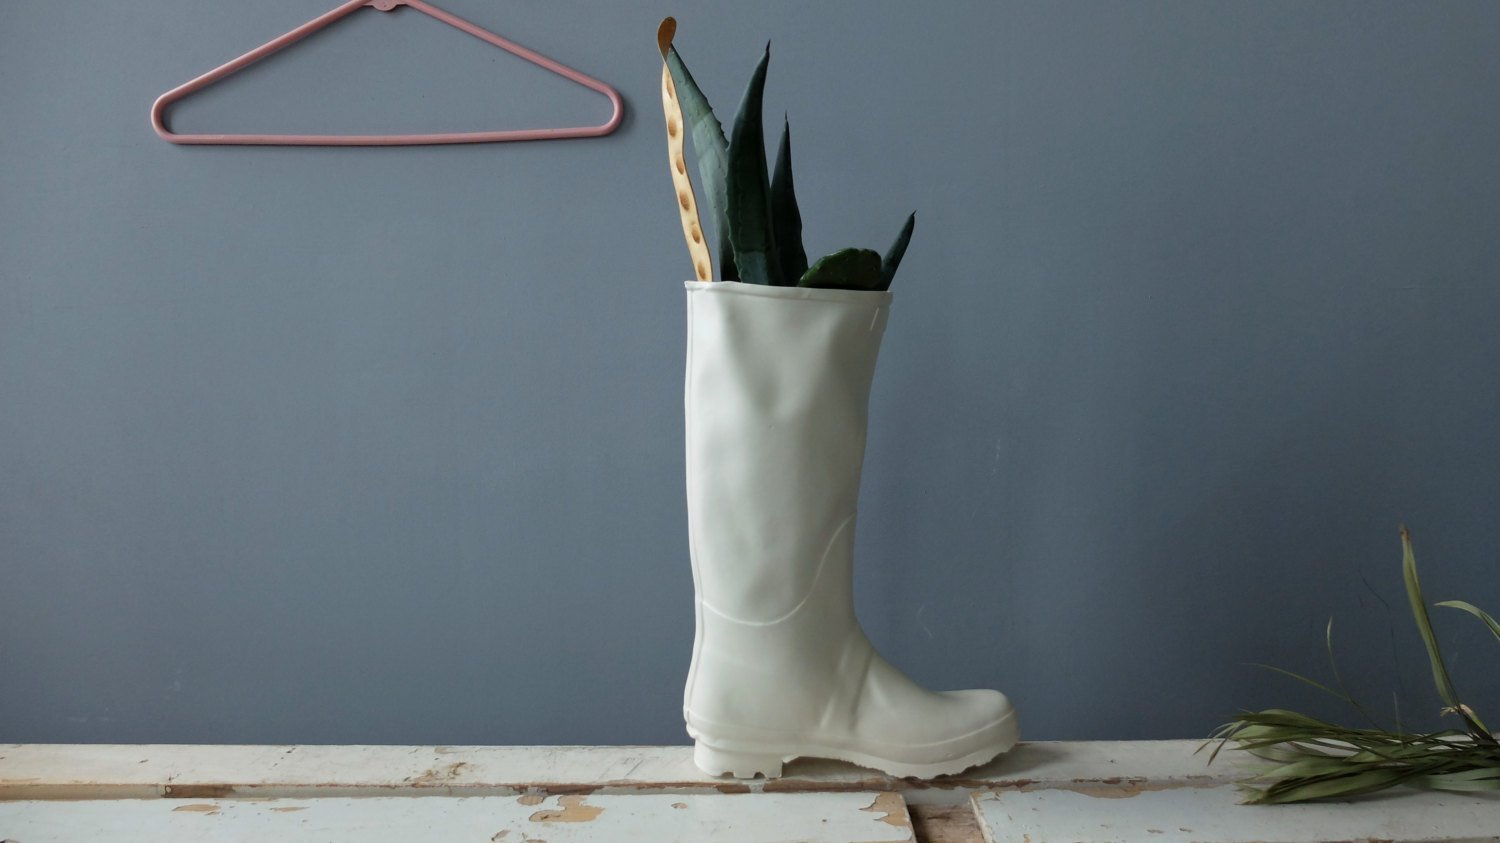 Amazon modern white ceramic rain boot vase for flowers amazon modern white ceramic rain boot vase for flowers funny shoe sculpture planter for indoor and outdoor plants by sind studio handmade reviewsmspy